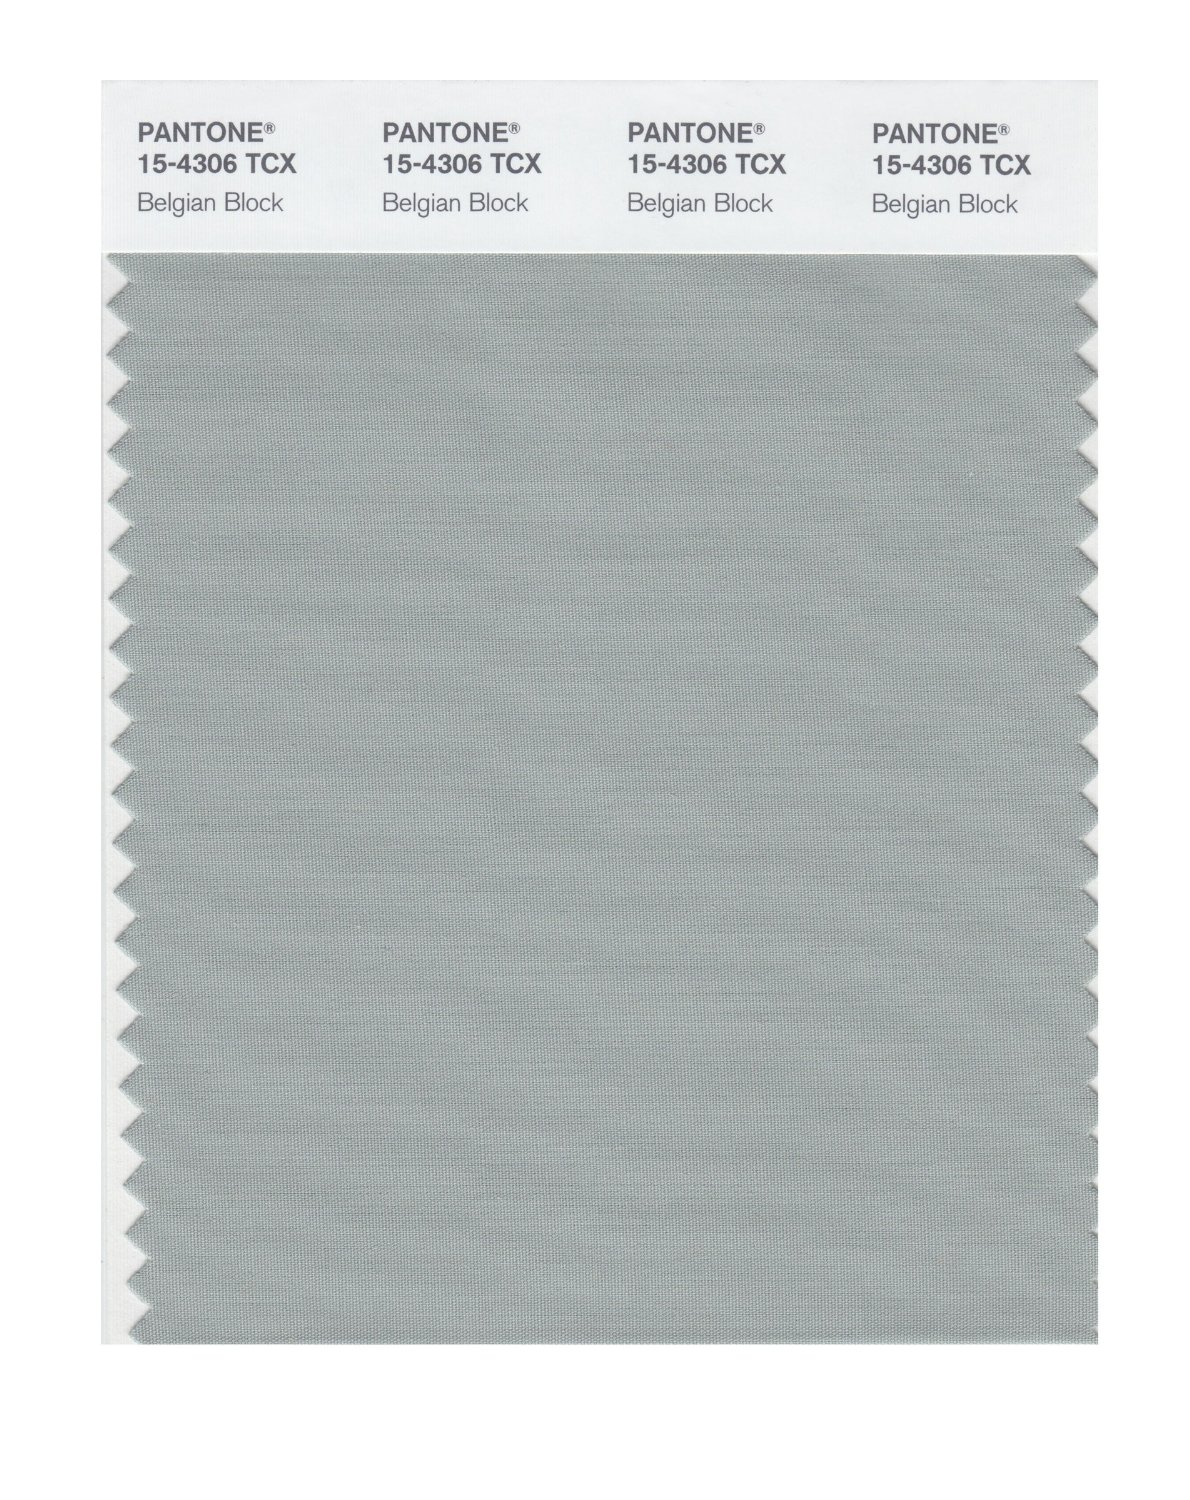 Pantone Smart Swatch 15-4306 Belgian Block